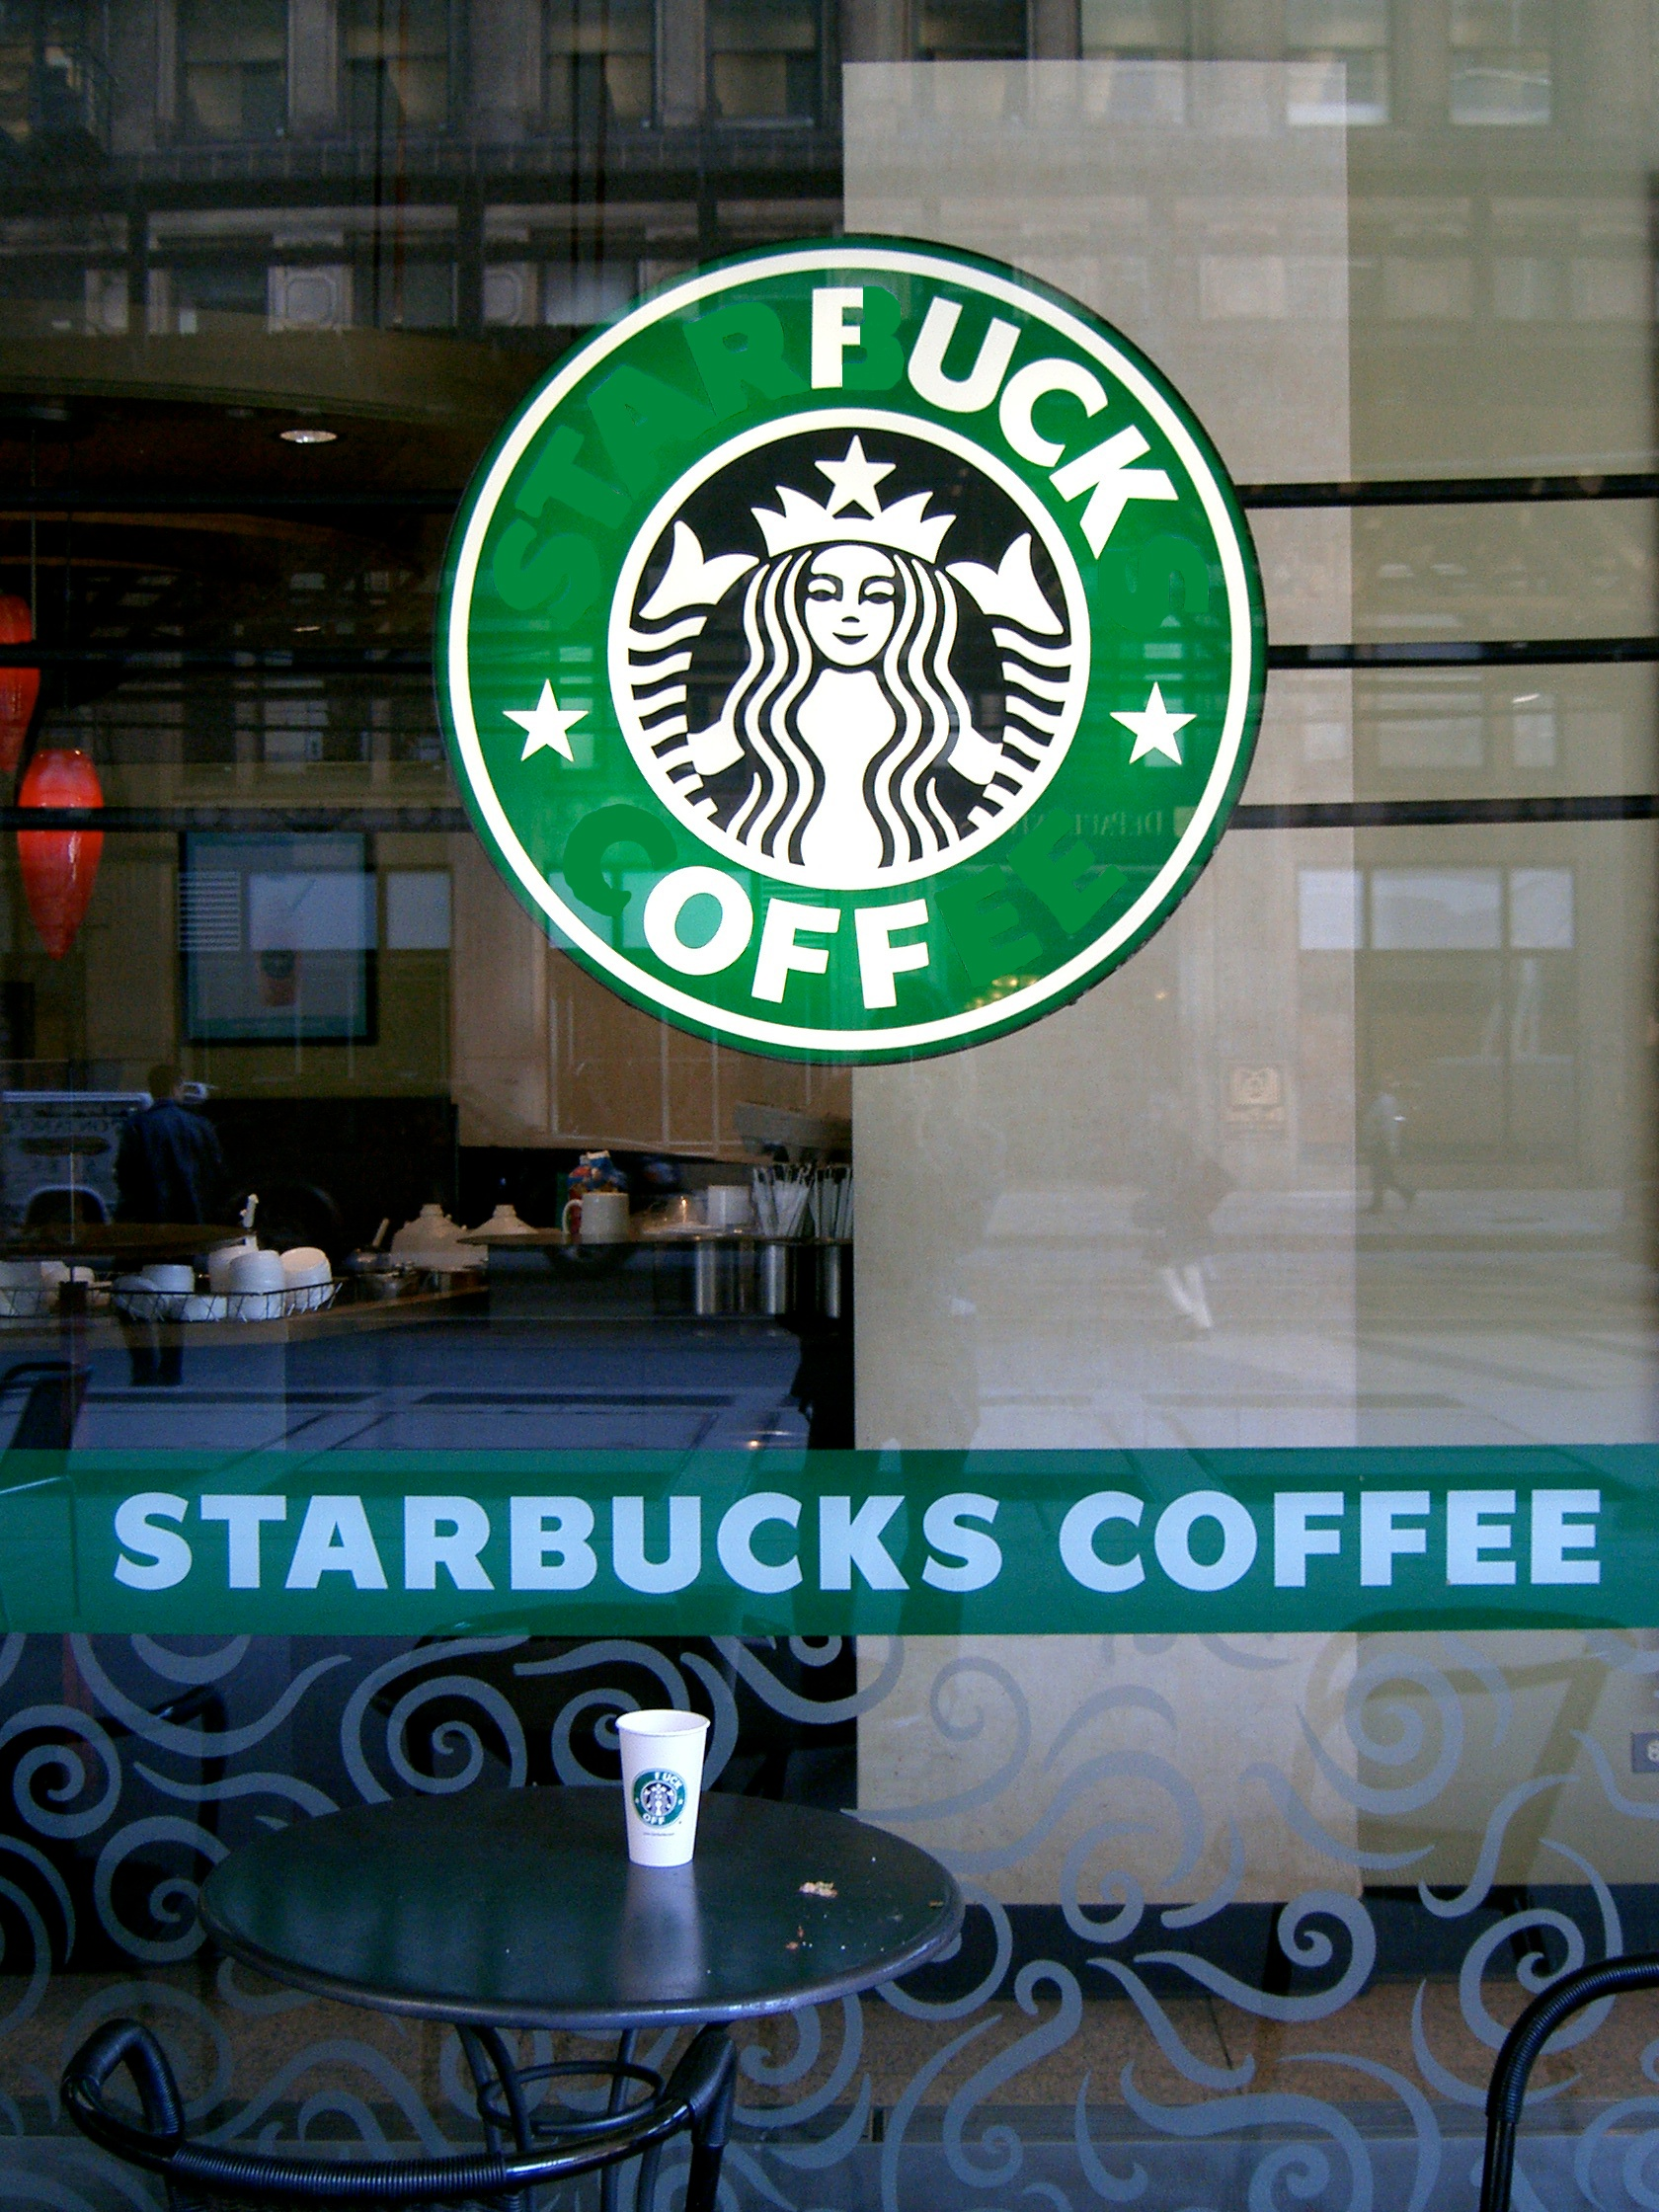 the front glass window of a Starbucks coffee shop with adapted logo to read 'fuck off'